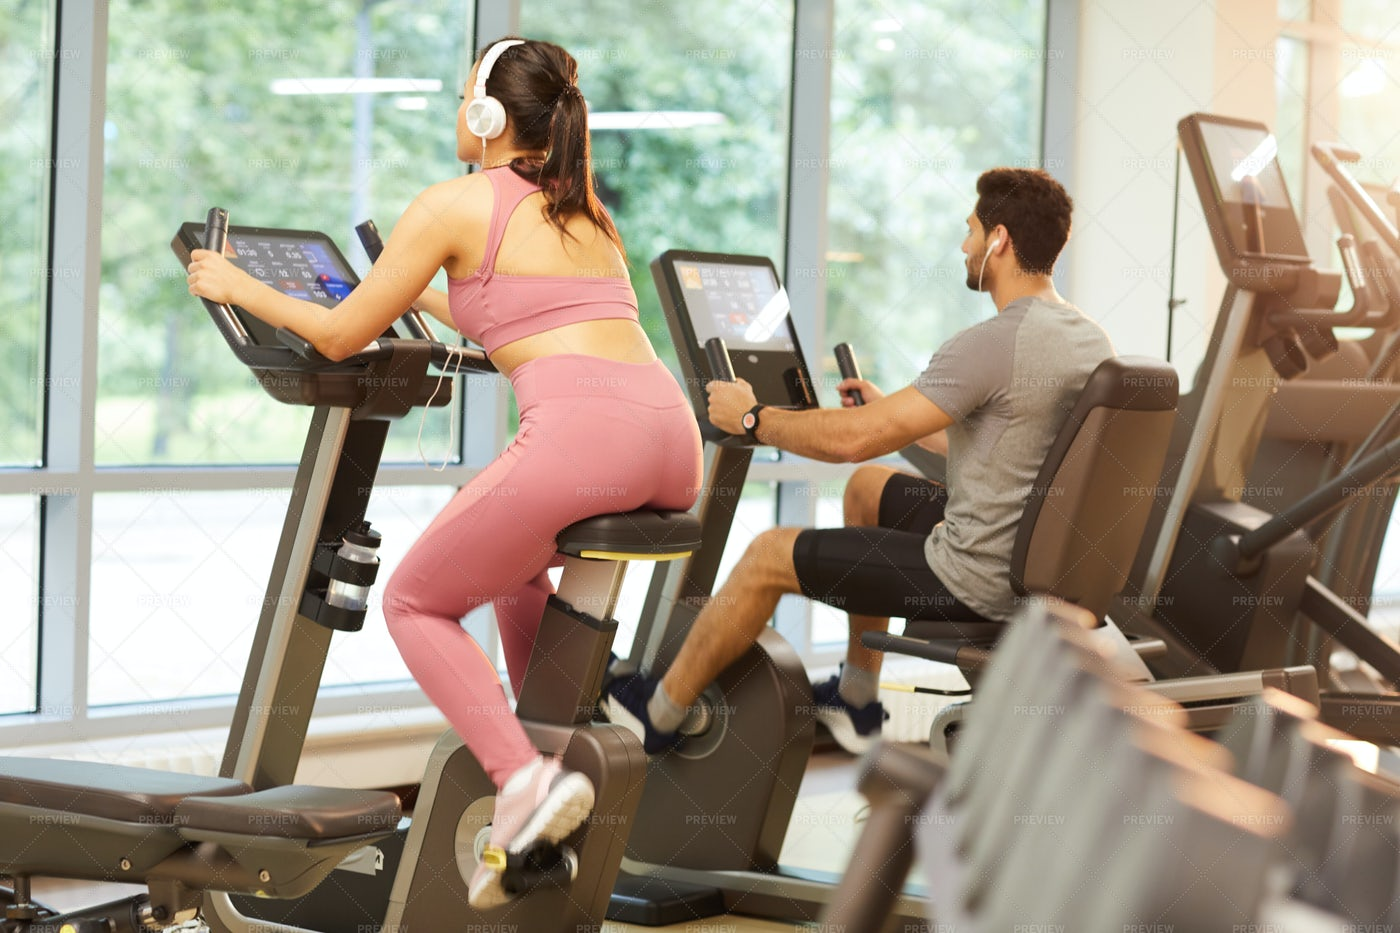 People Using Exercise Machines In...: Stock Photos